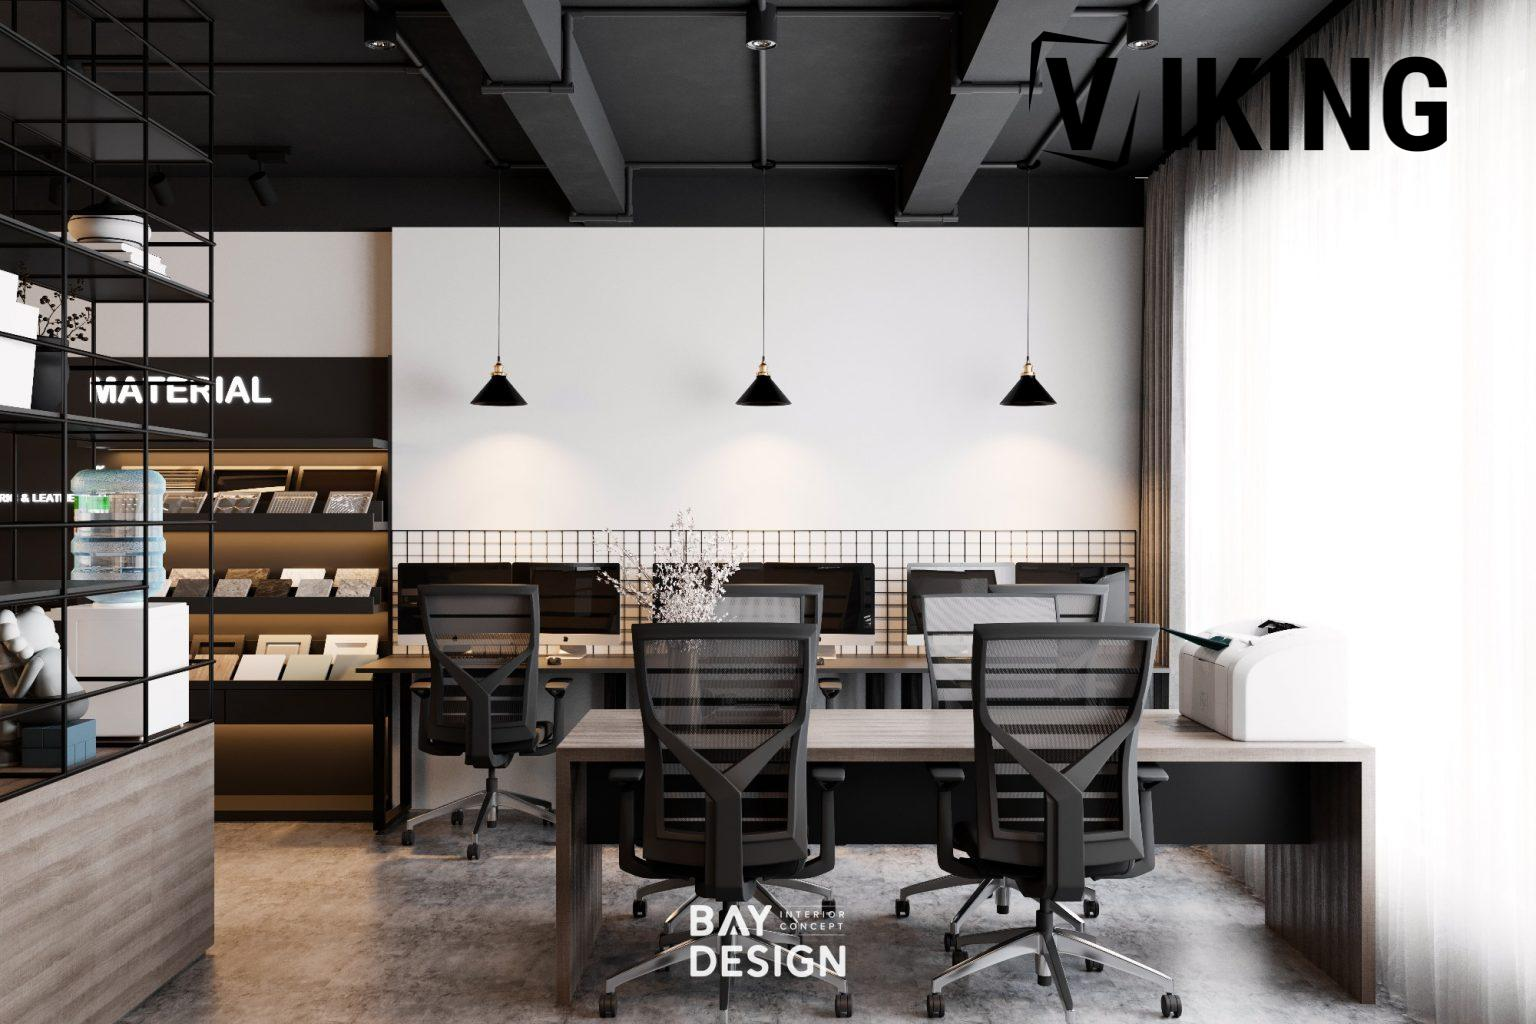 4377.Officeroom Scenes 3dsmax File free download by Duc Nam 3 1536x1024 1